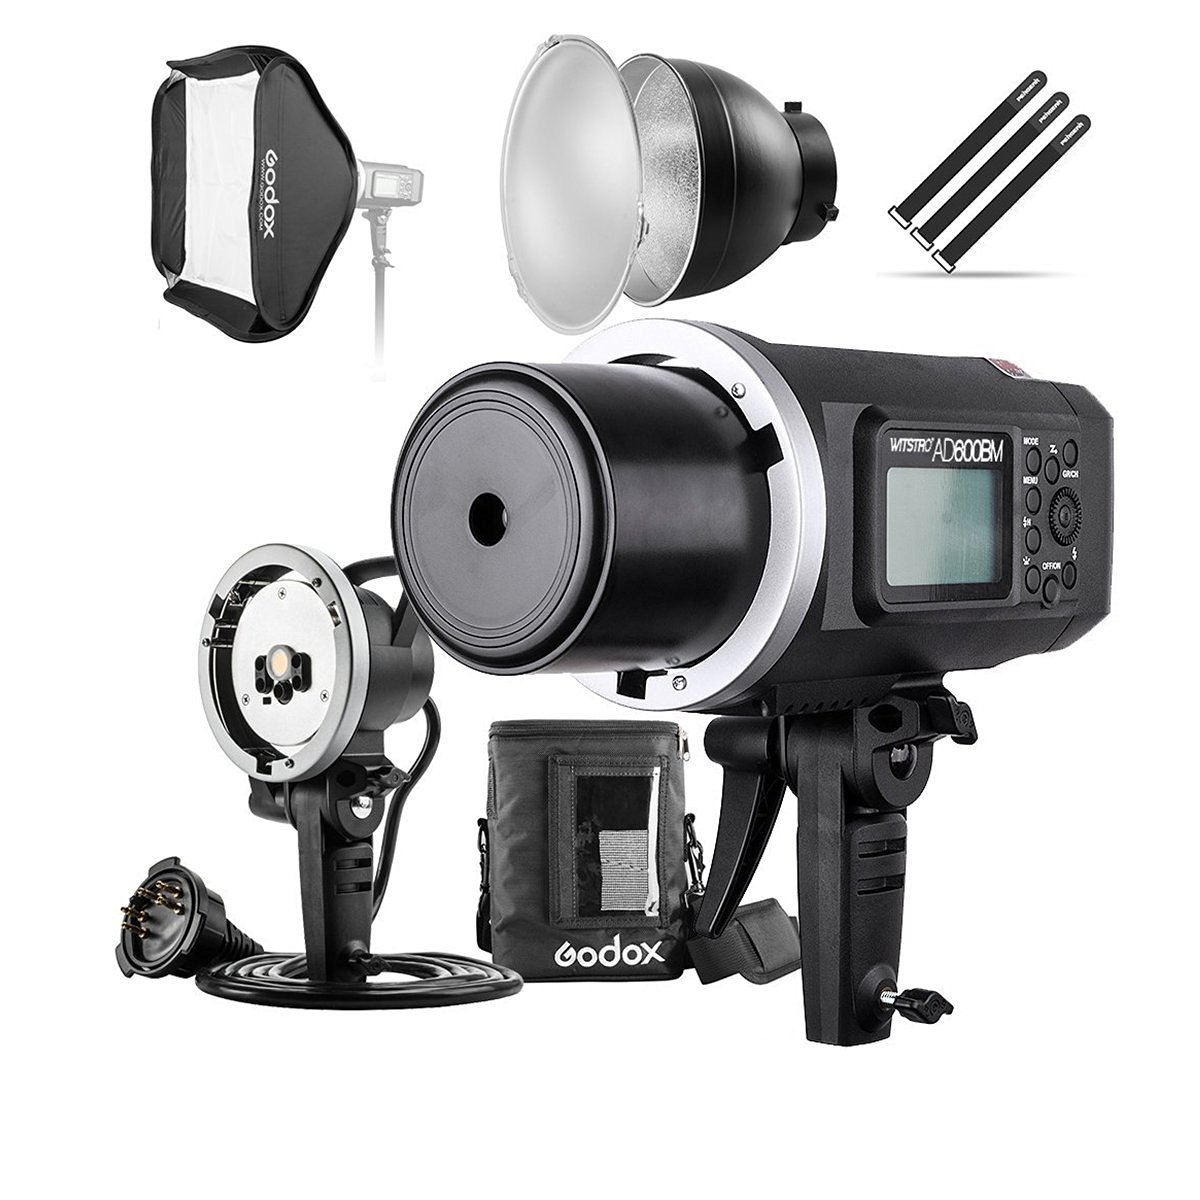 Godox AD600BM 600Ws GN87 HSS Flash Strobe Monolight with 8700mAh Battery, 600W Portable Lamp Flash Head, 23''X23'' Flash Softbox, 7'' Standard Reflector, 7'' Flash Diffuser and Portable Flash Bag by Godox